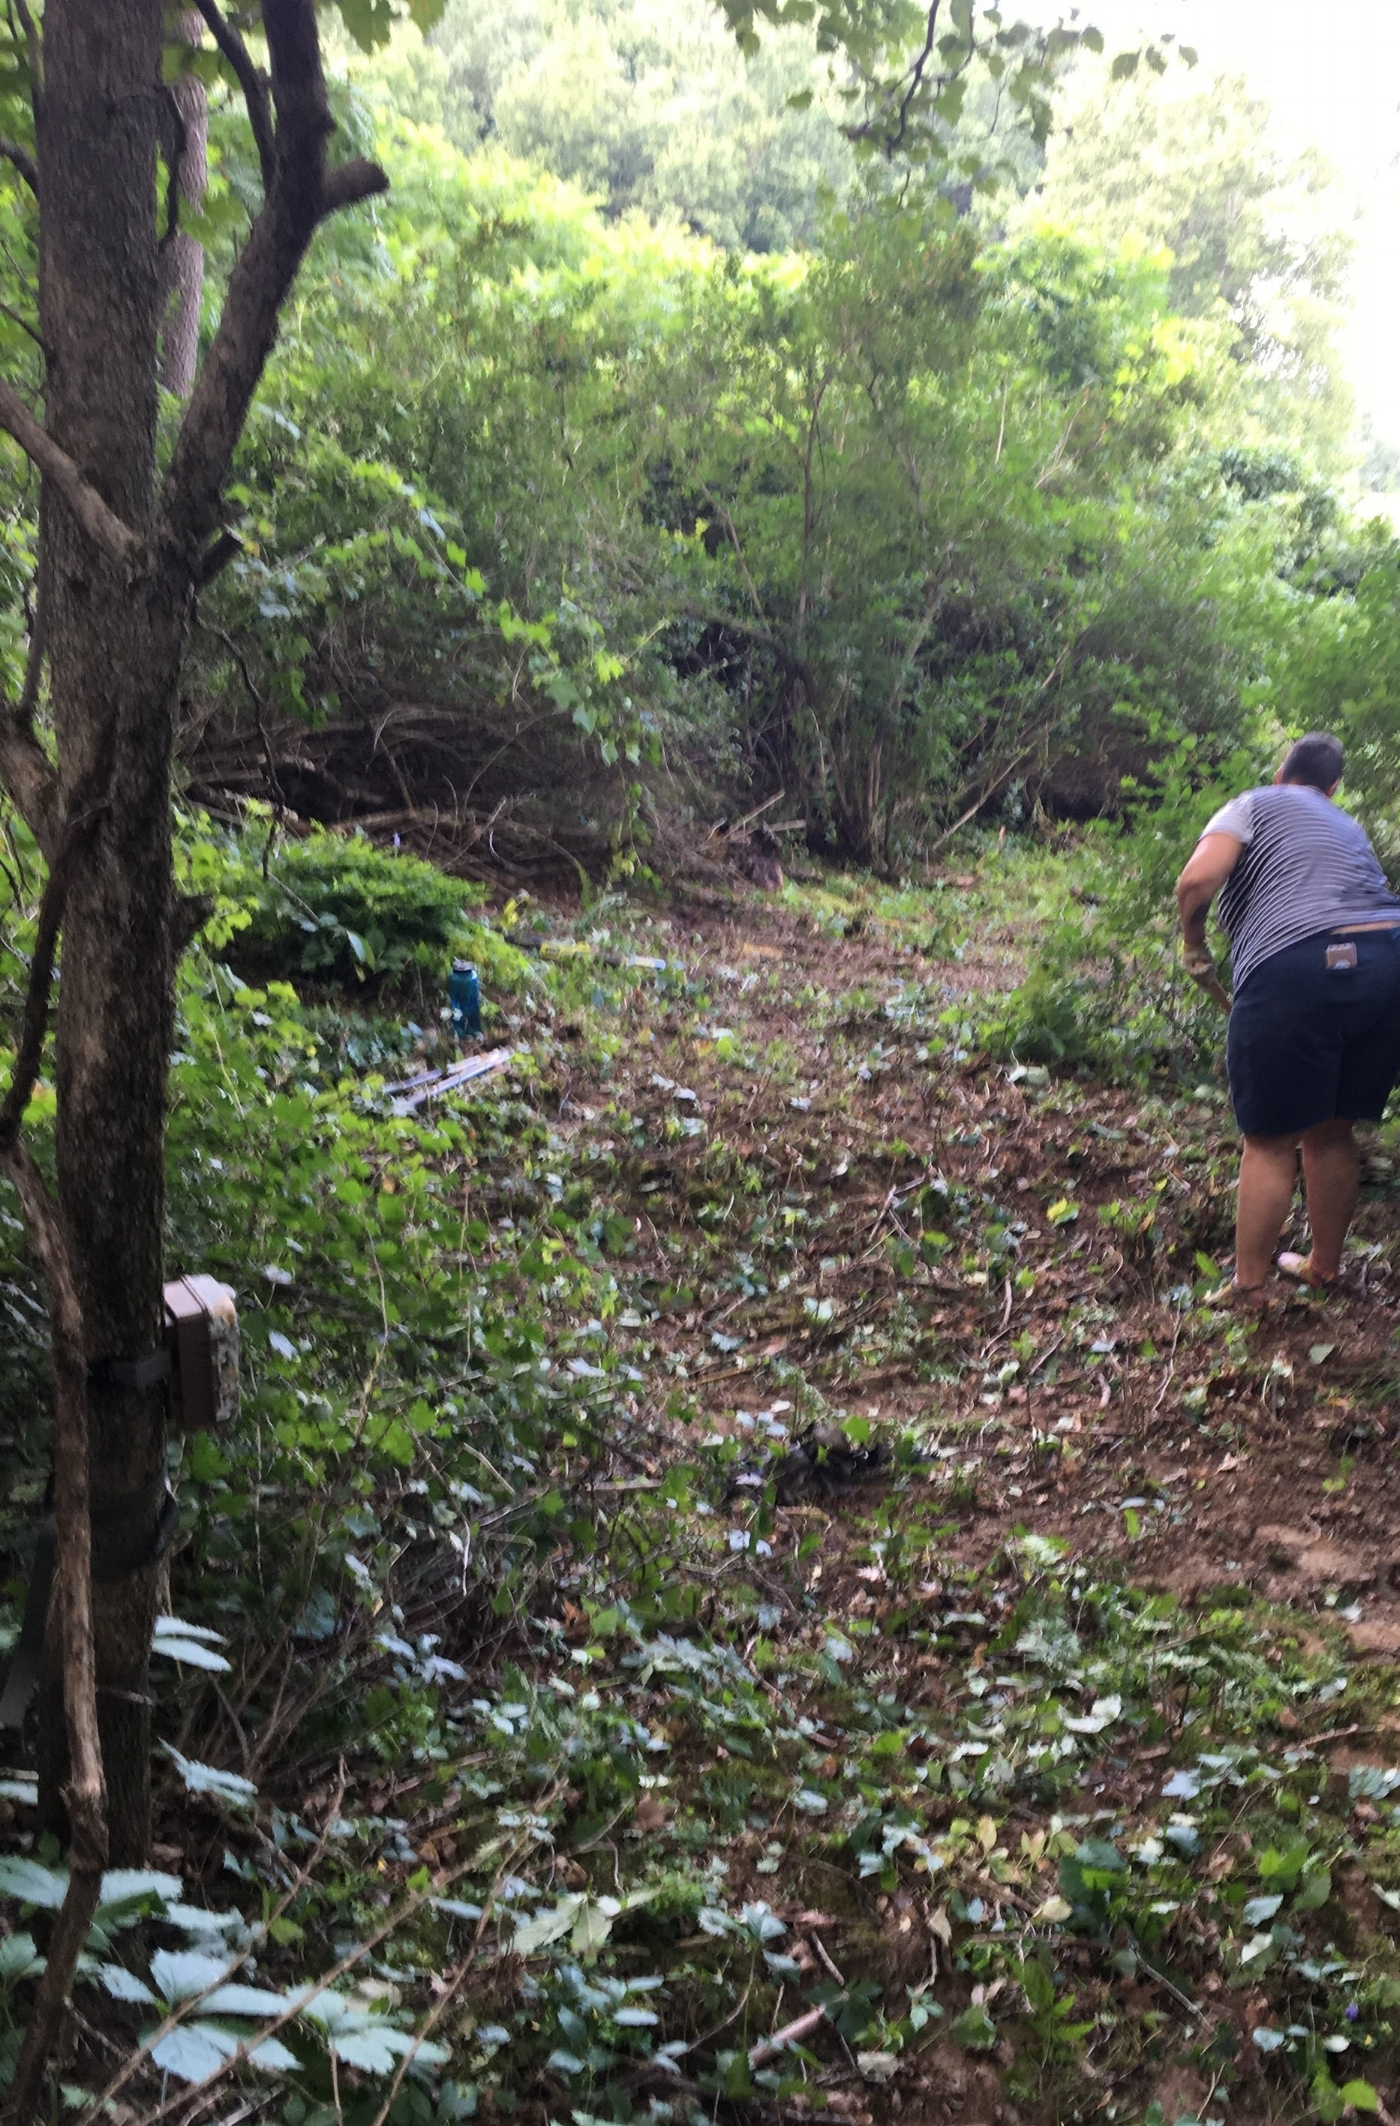 2018 - Having completed the first stage of our project by building steps instead of a road, we are now working on the trail, removing dangerous cattle fencing and cutting overgrown, thorny bushes (wearing proper gear).